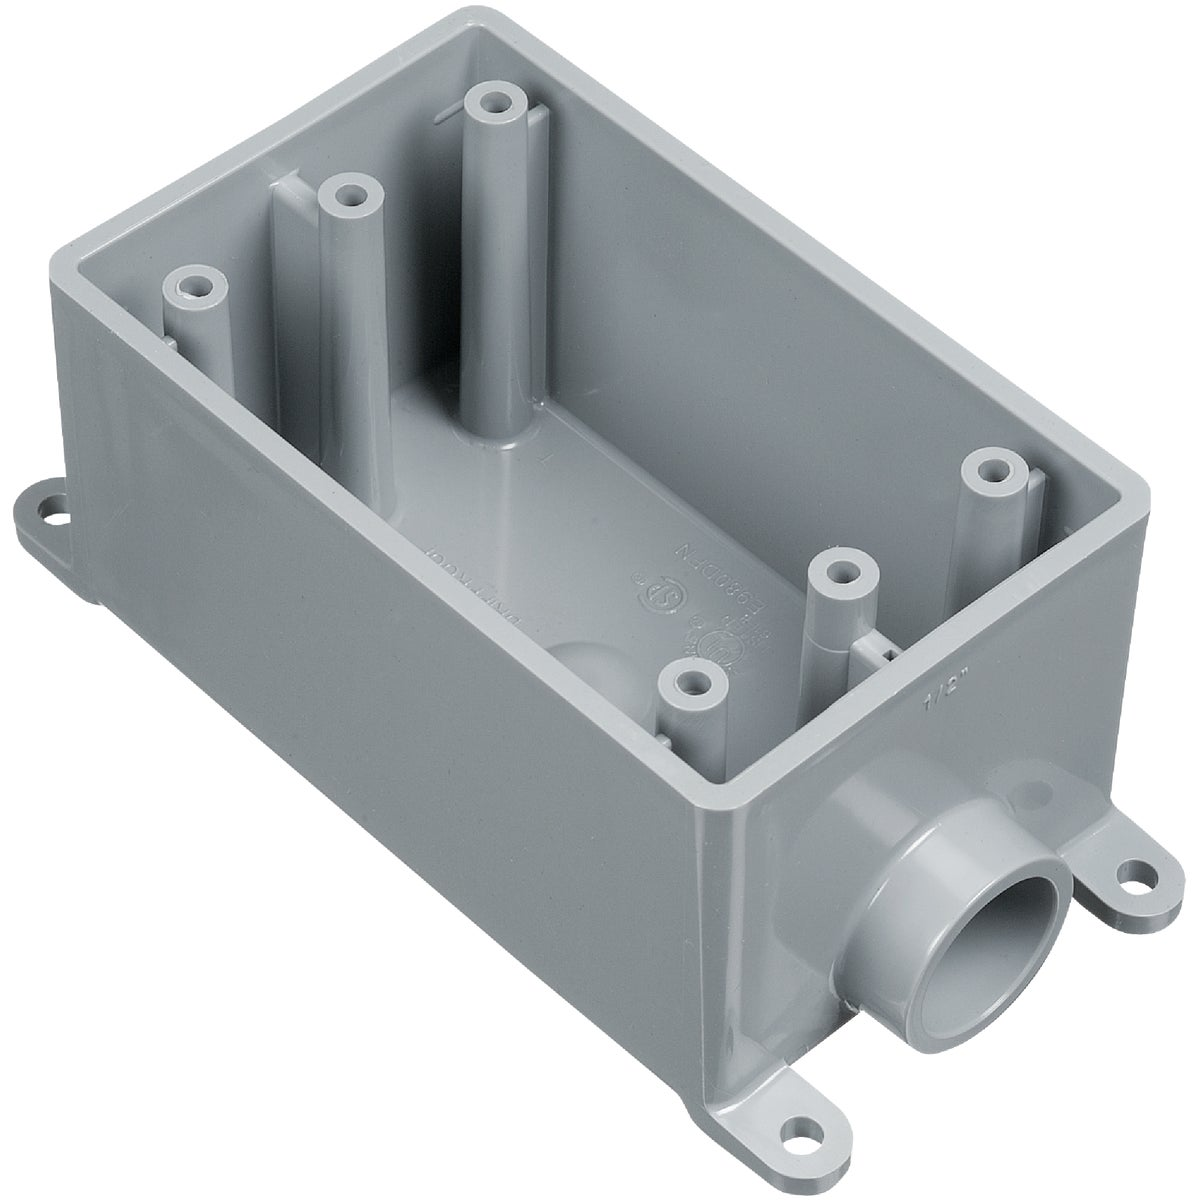 "3/4"" FSE OUTLET BOX - E980EFNCTN by Thomas & Betts"